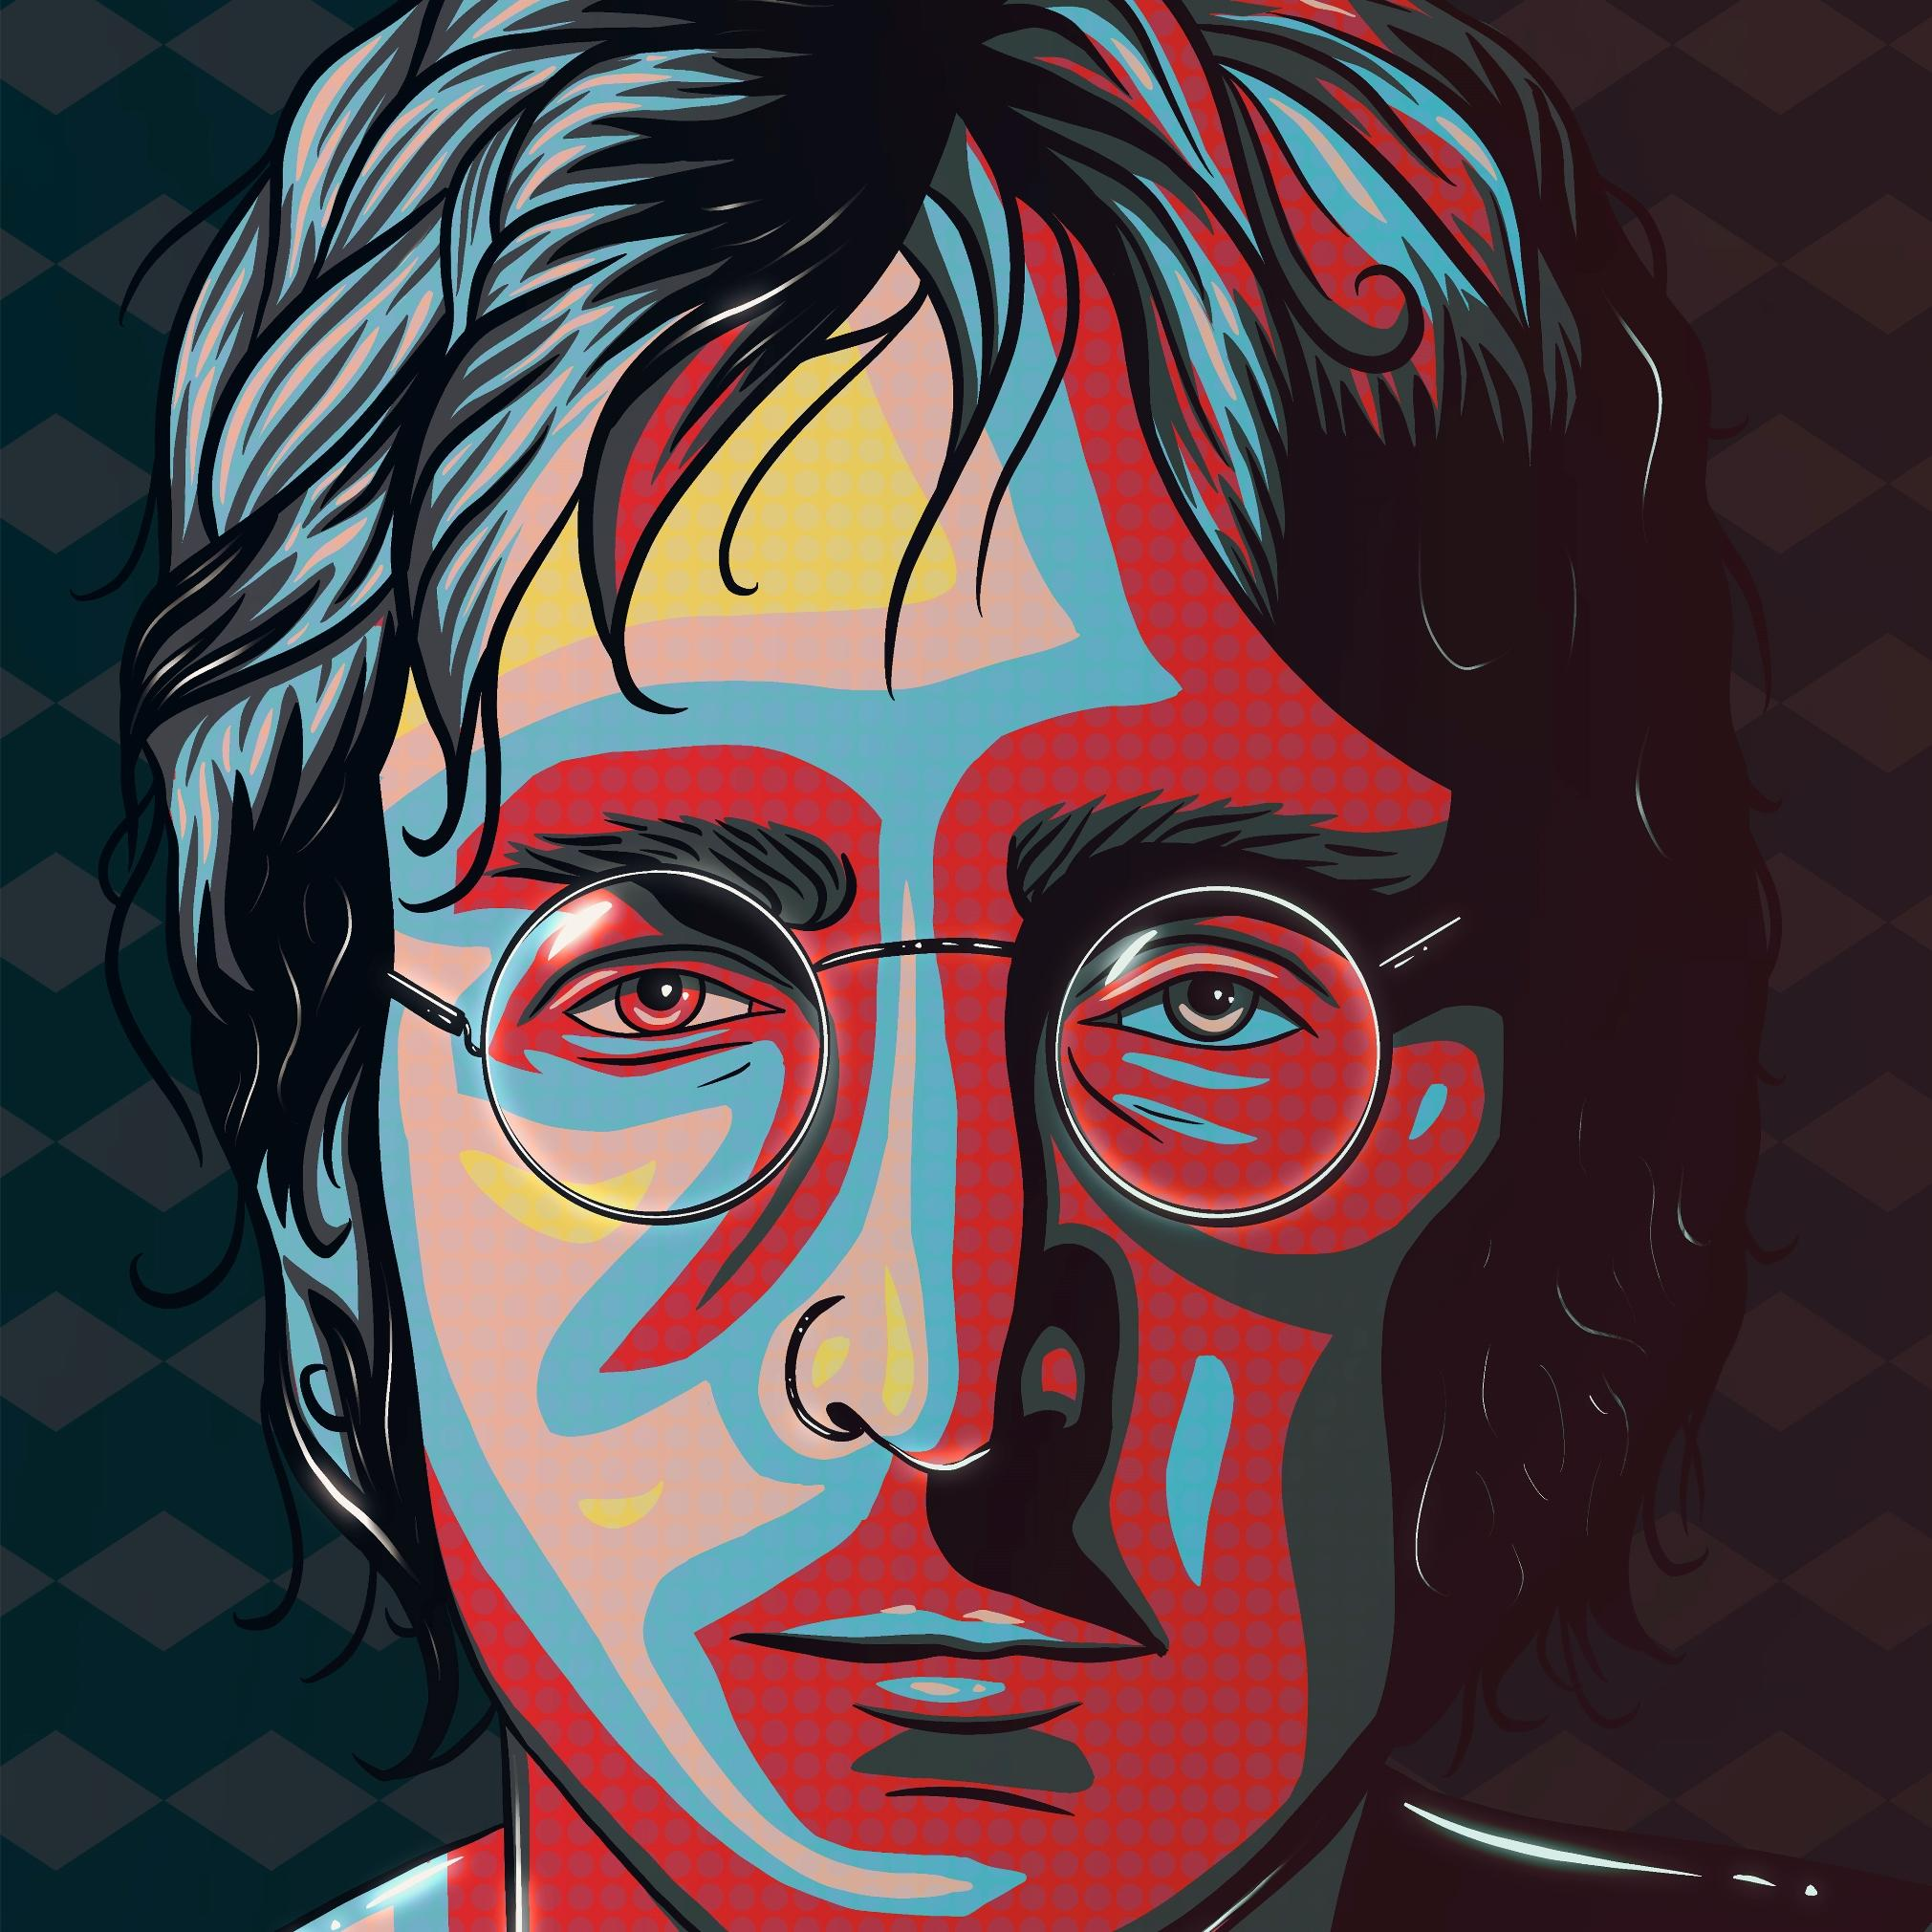 A digital painting in the form of pop art by Lily Bourne of John Lennon from the 1960s. Red, yellow, blue and black in colour.